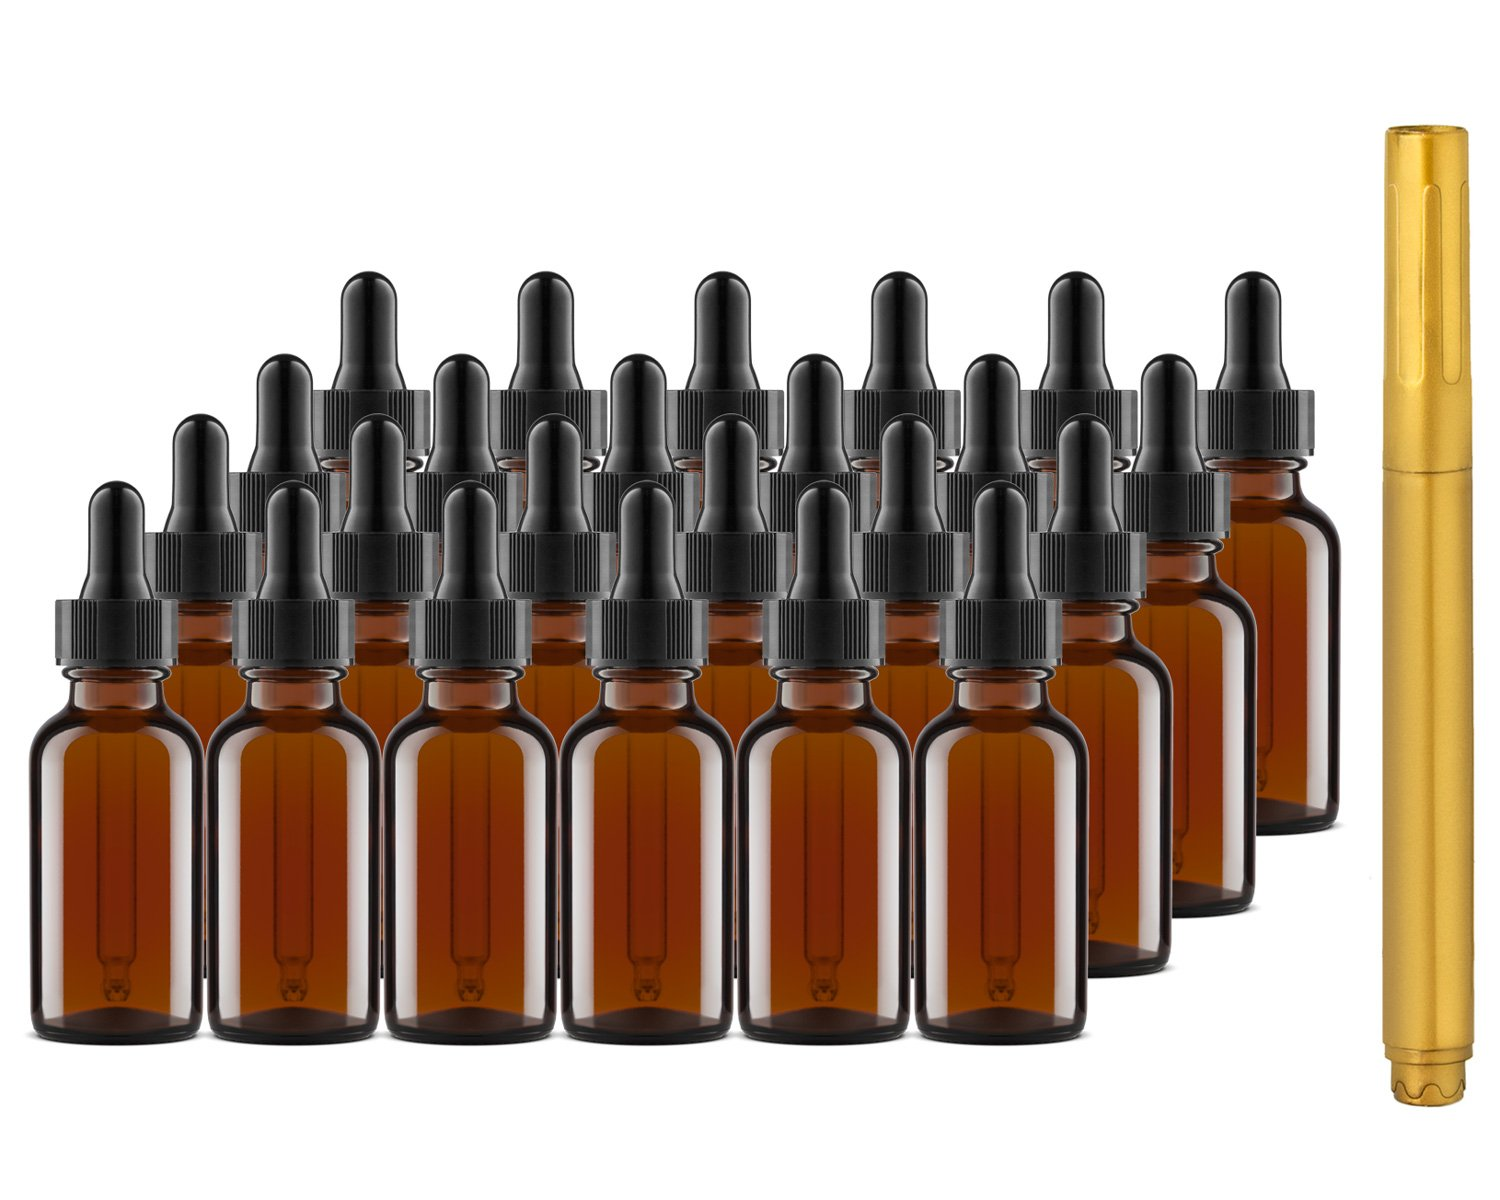 Culinaire 24 Pack Of 1 oz Amber Glass Bottles with Dropper Tops and Gold Glass Pen